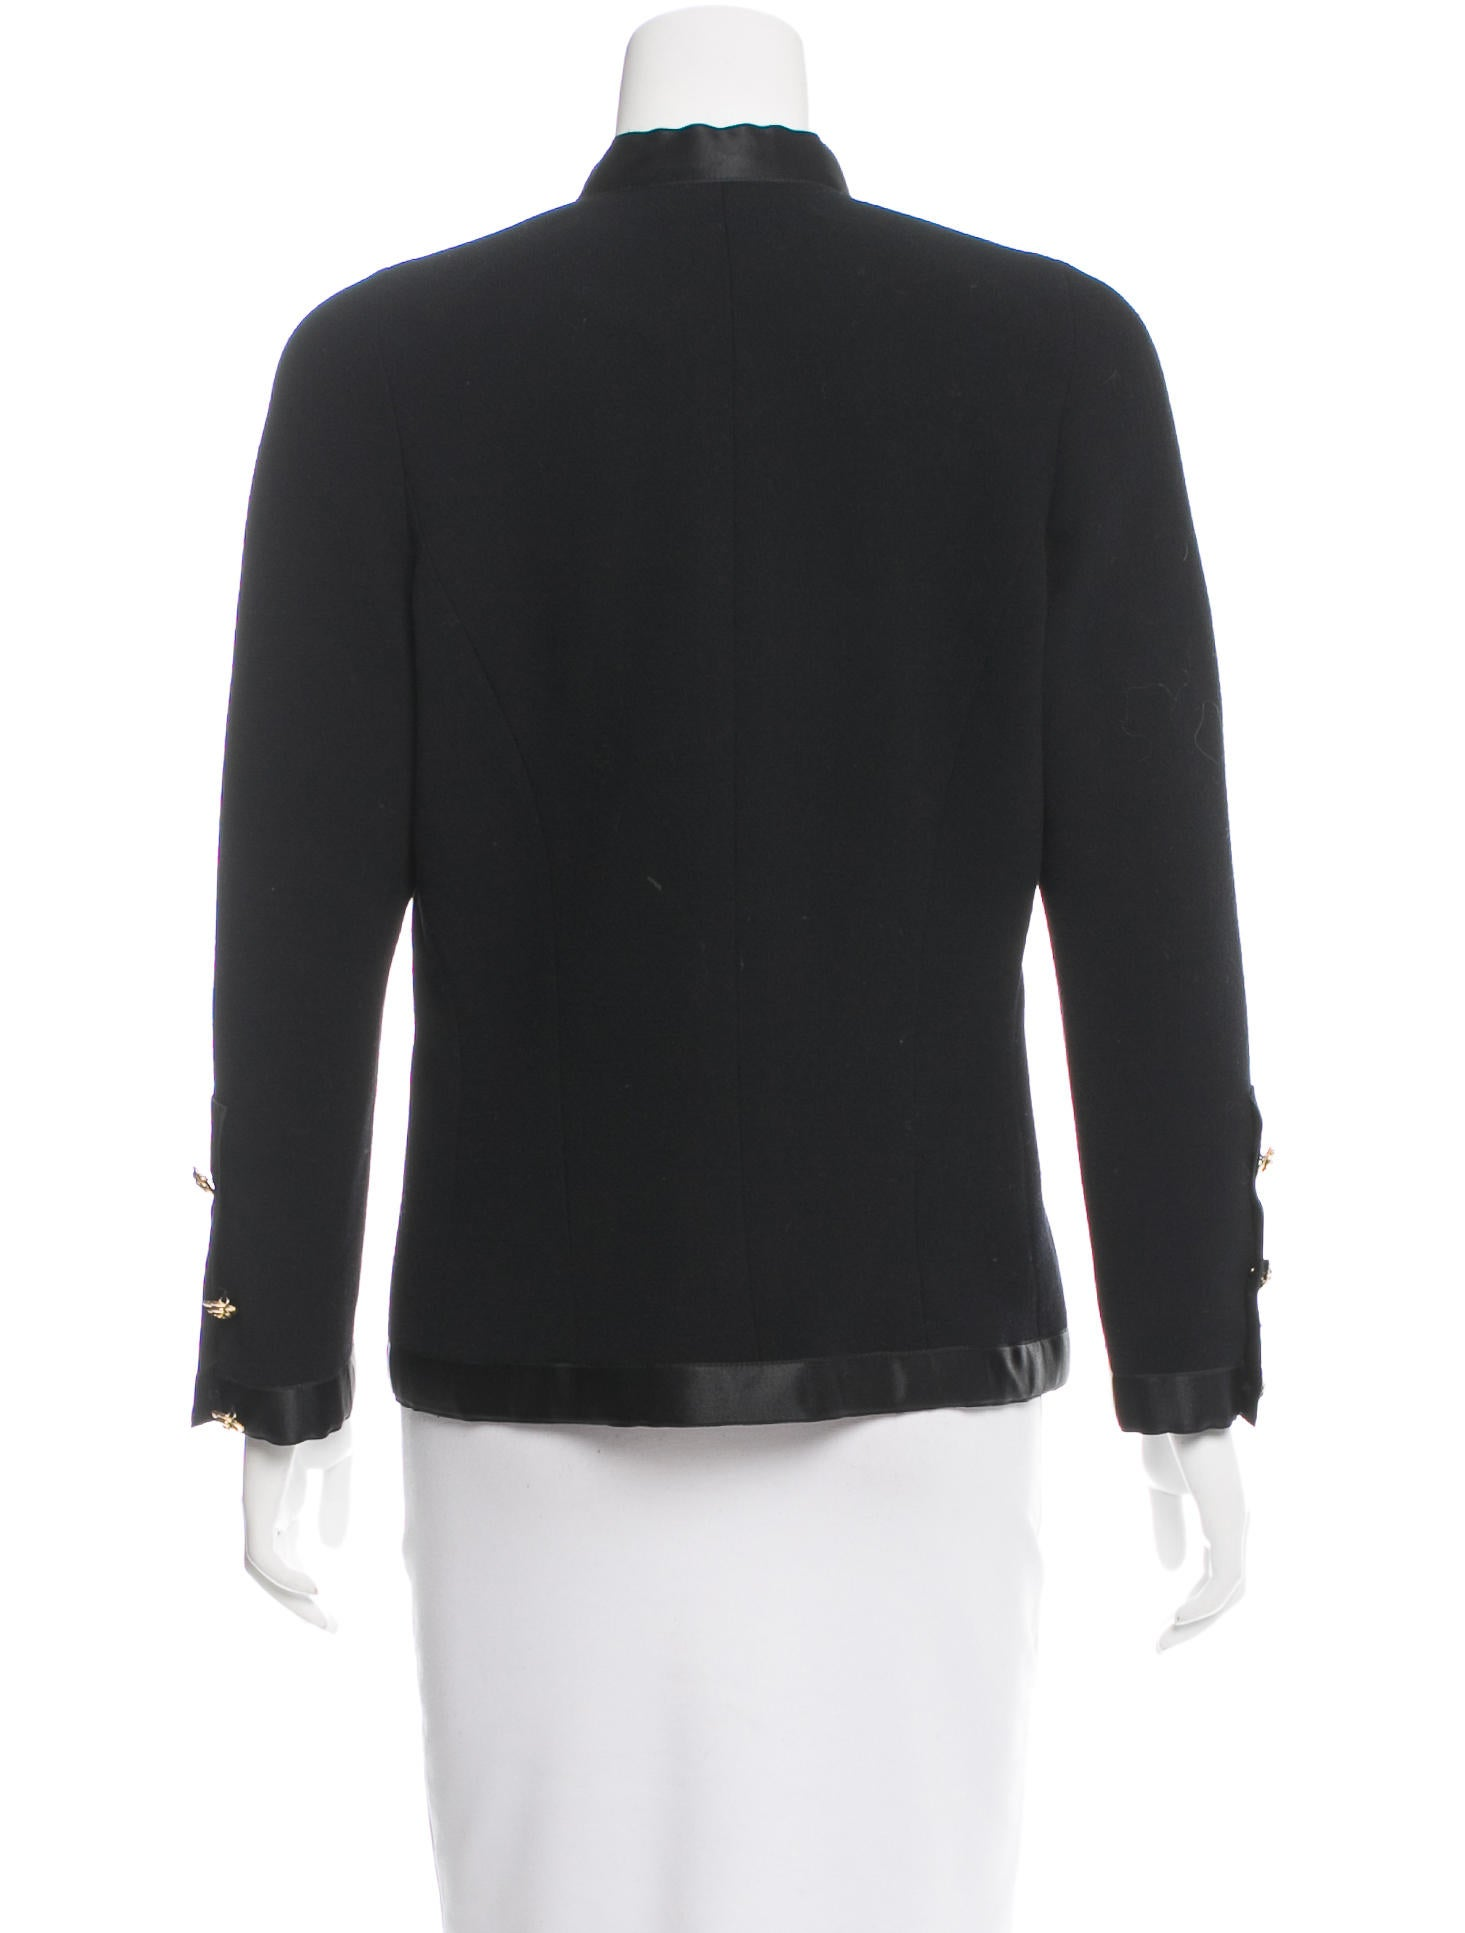 Find black fitted jacket at ShopStyle. Shop the latest collection of black fitted jacket from the most popular stores - all in one place.